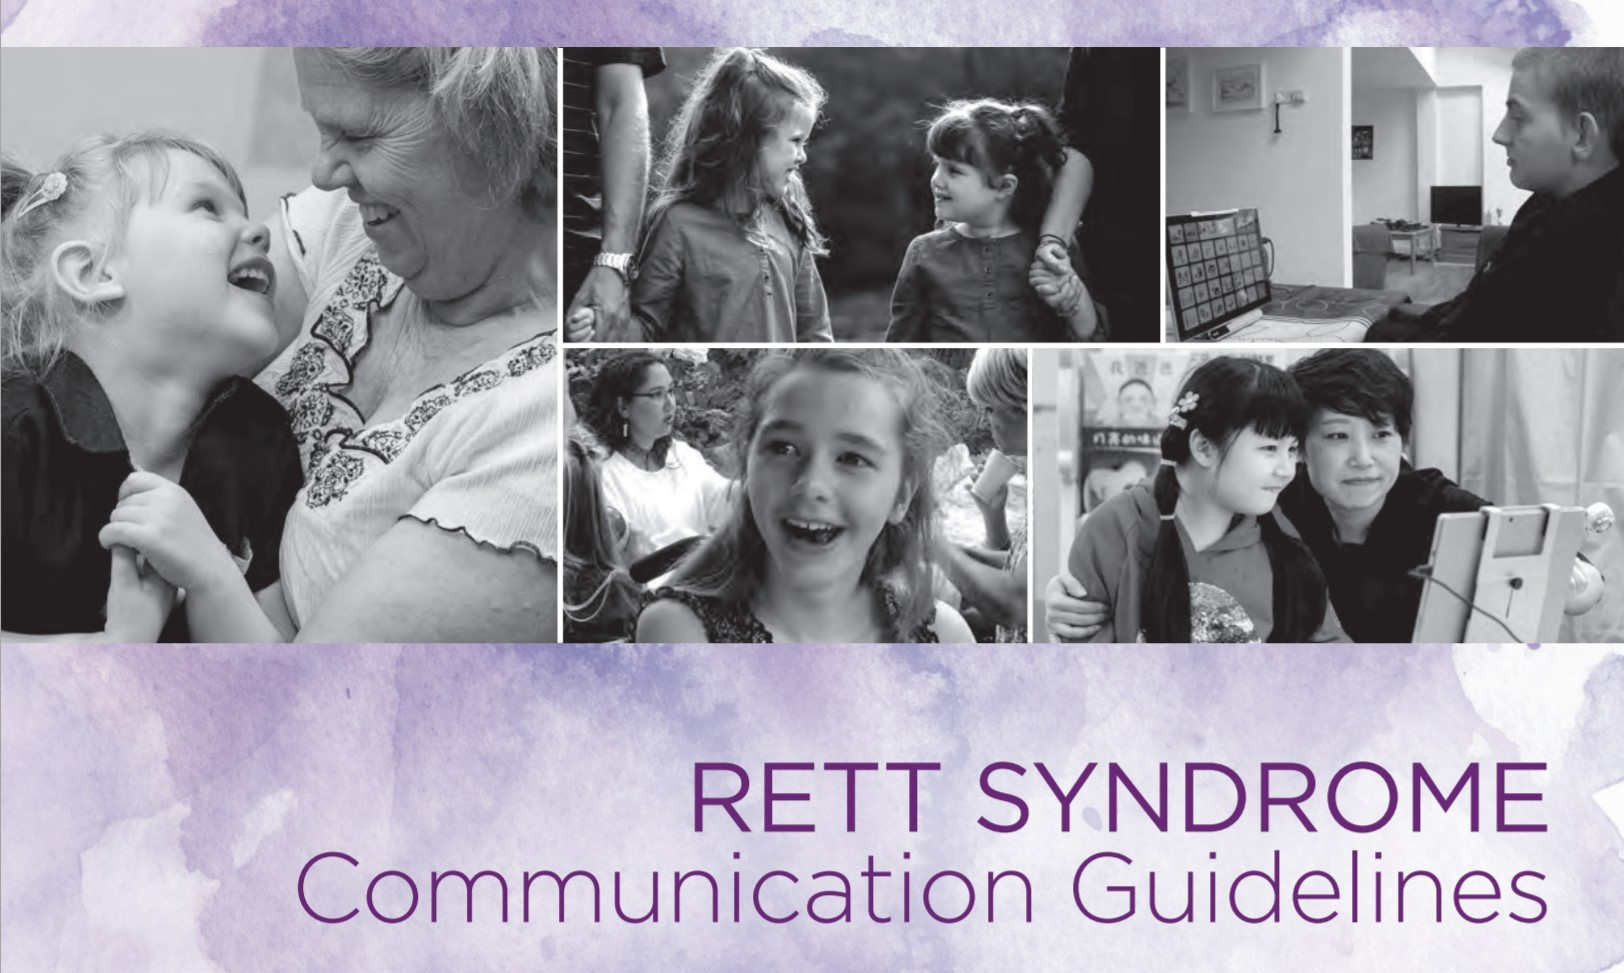 Release of Rett Syndrome Communication Guidelines